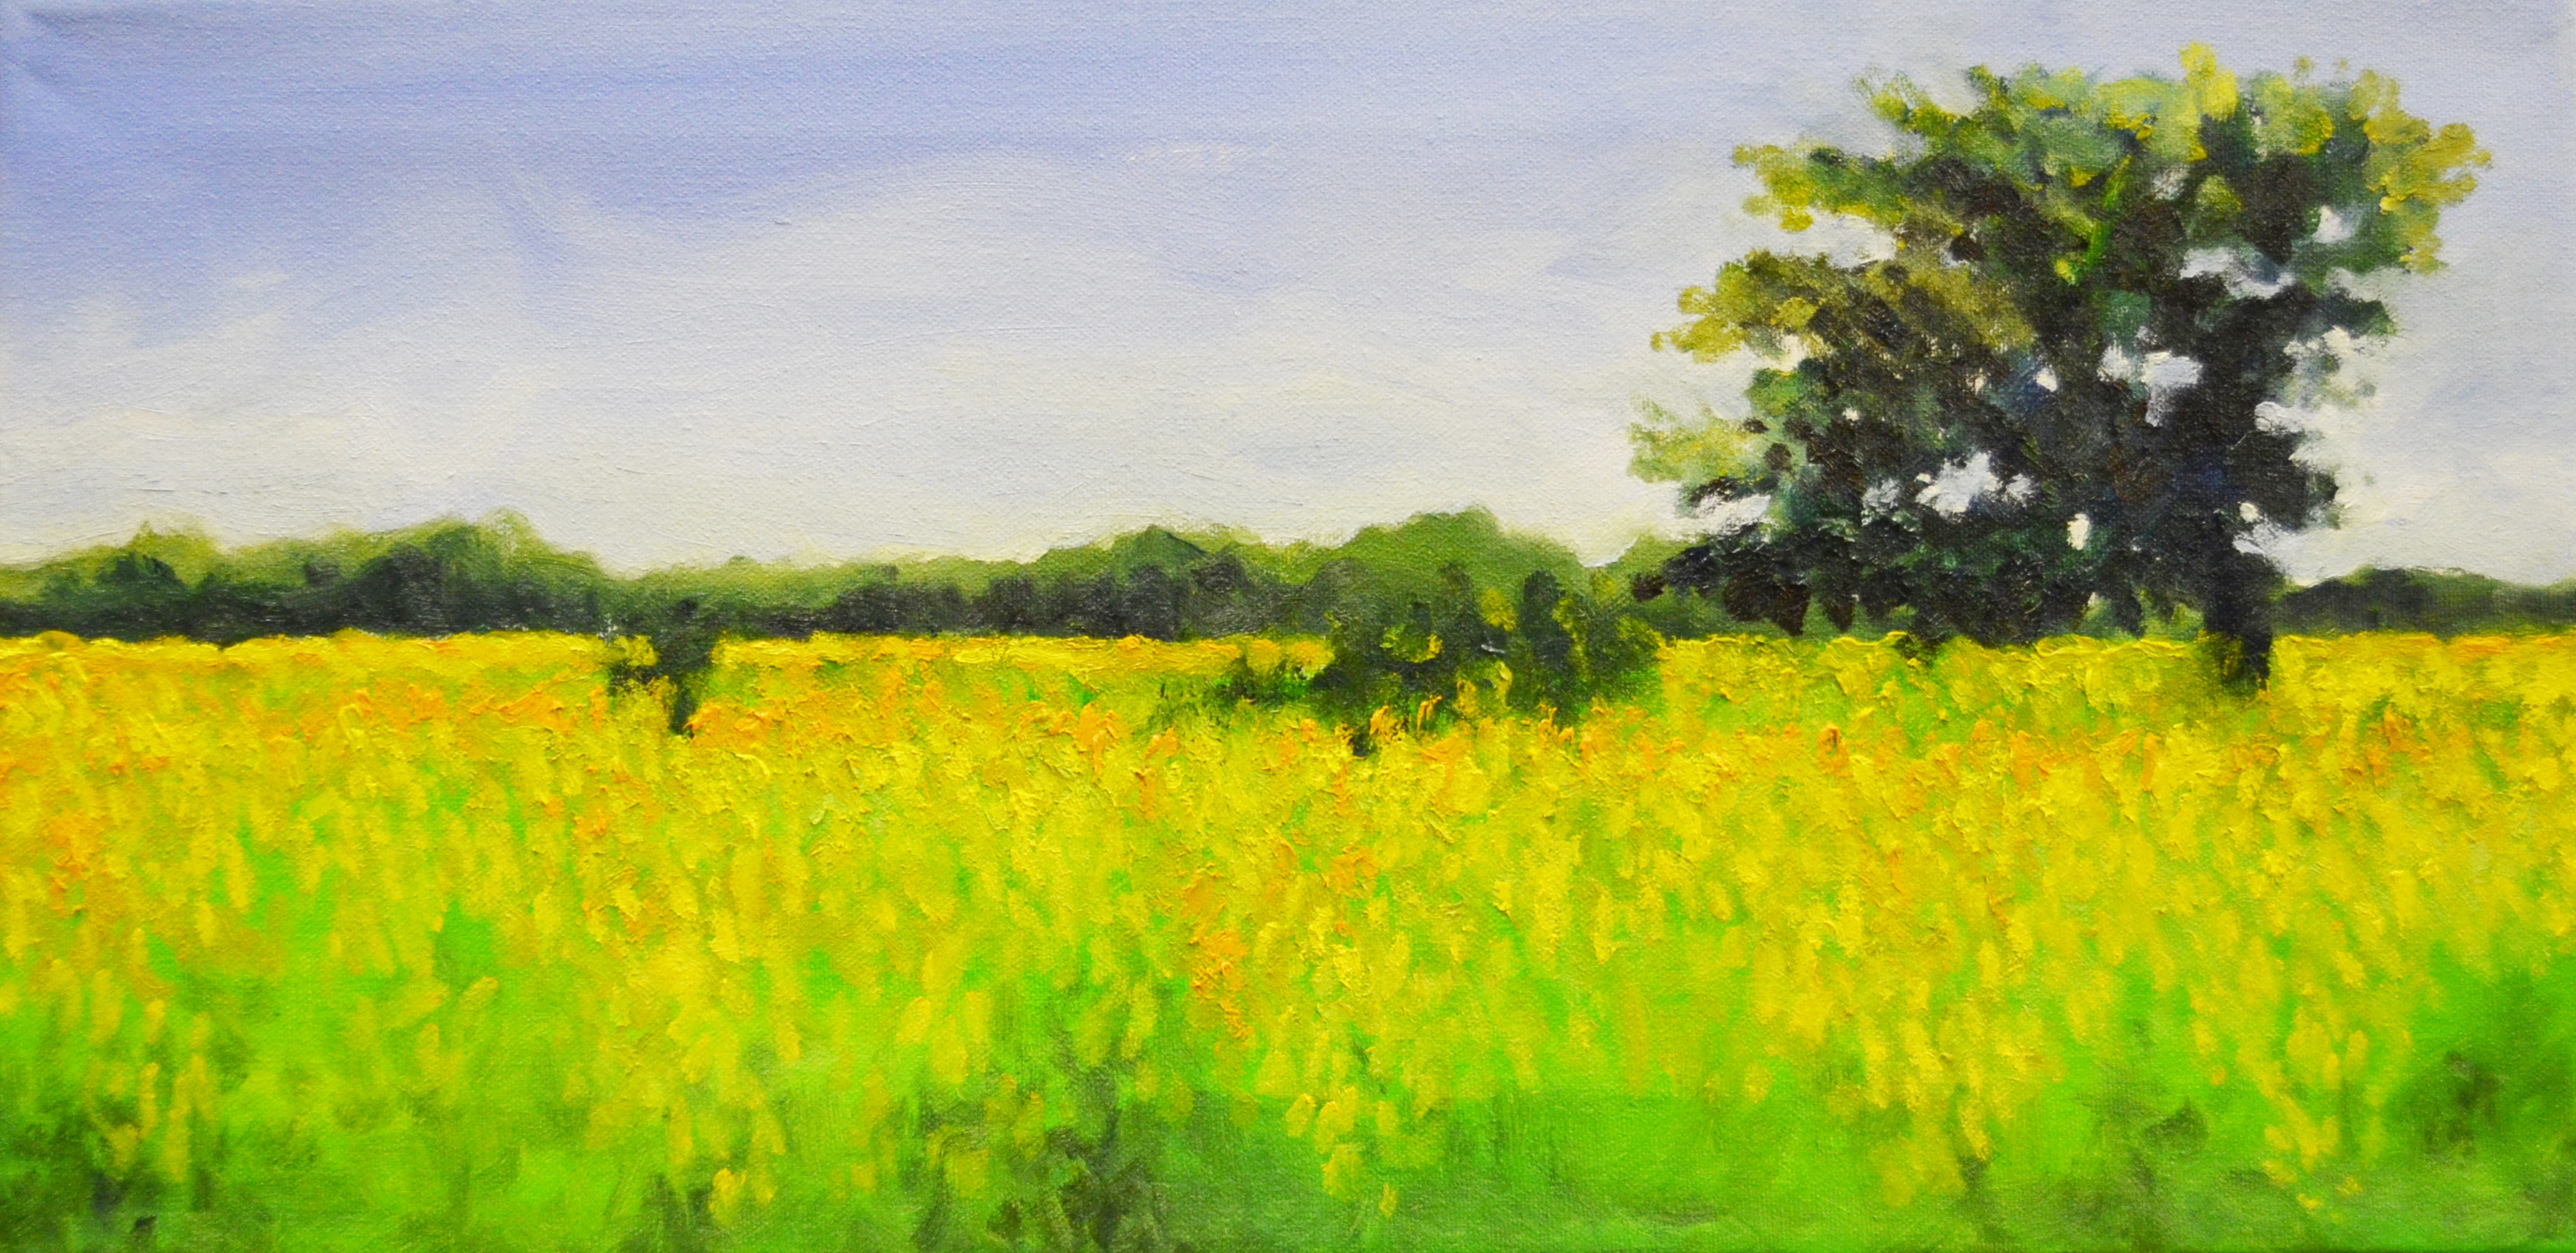 Mustard Fields of India, oil on canvas painting by Dale Sprague